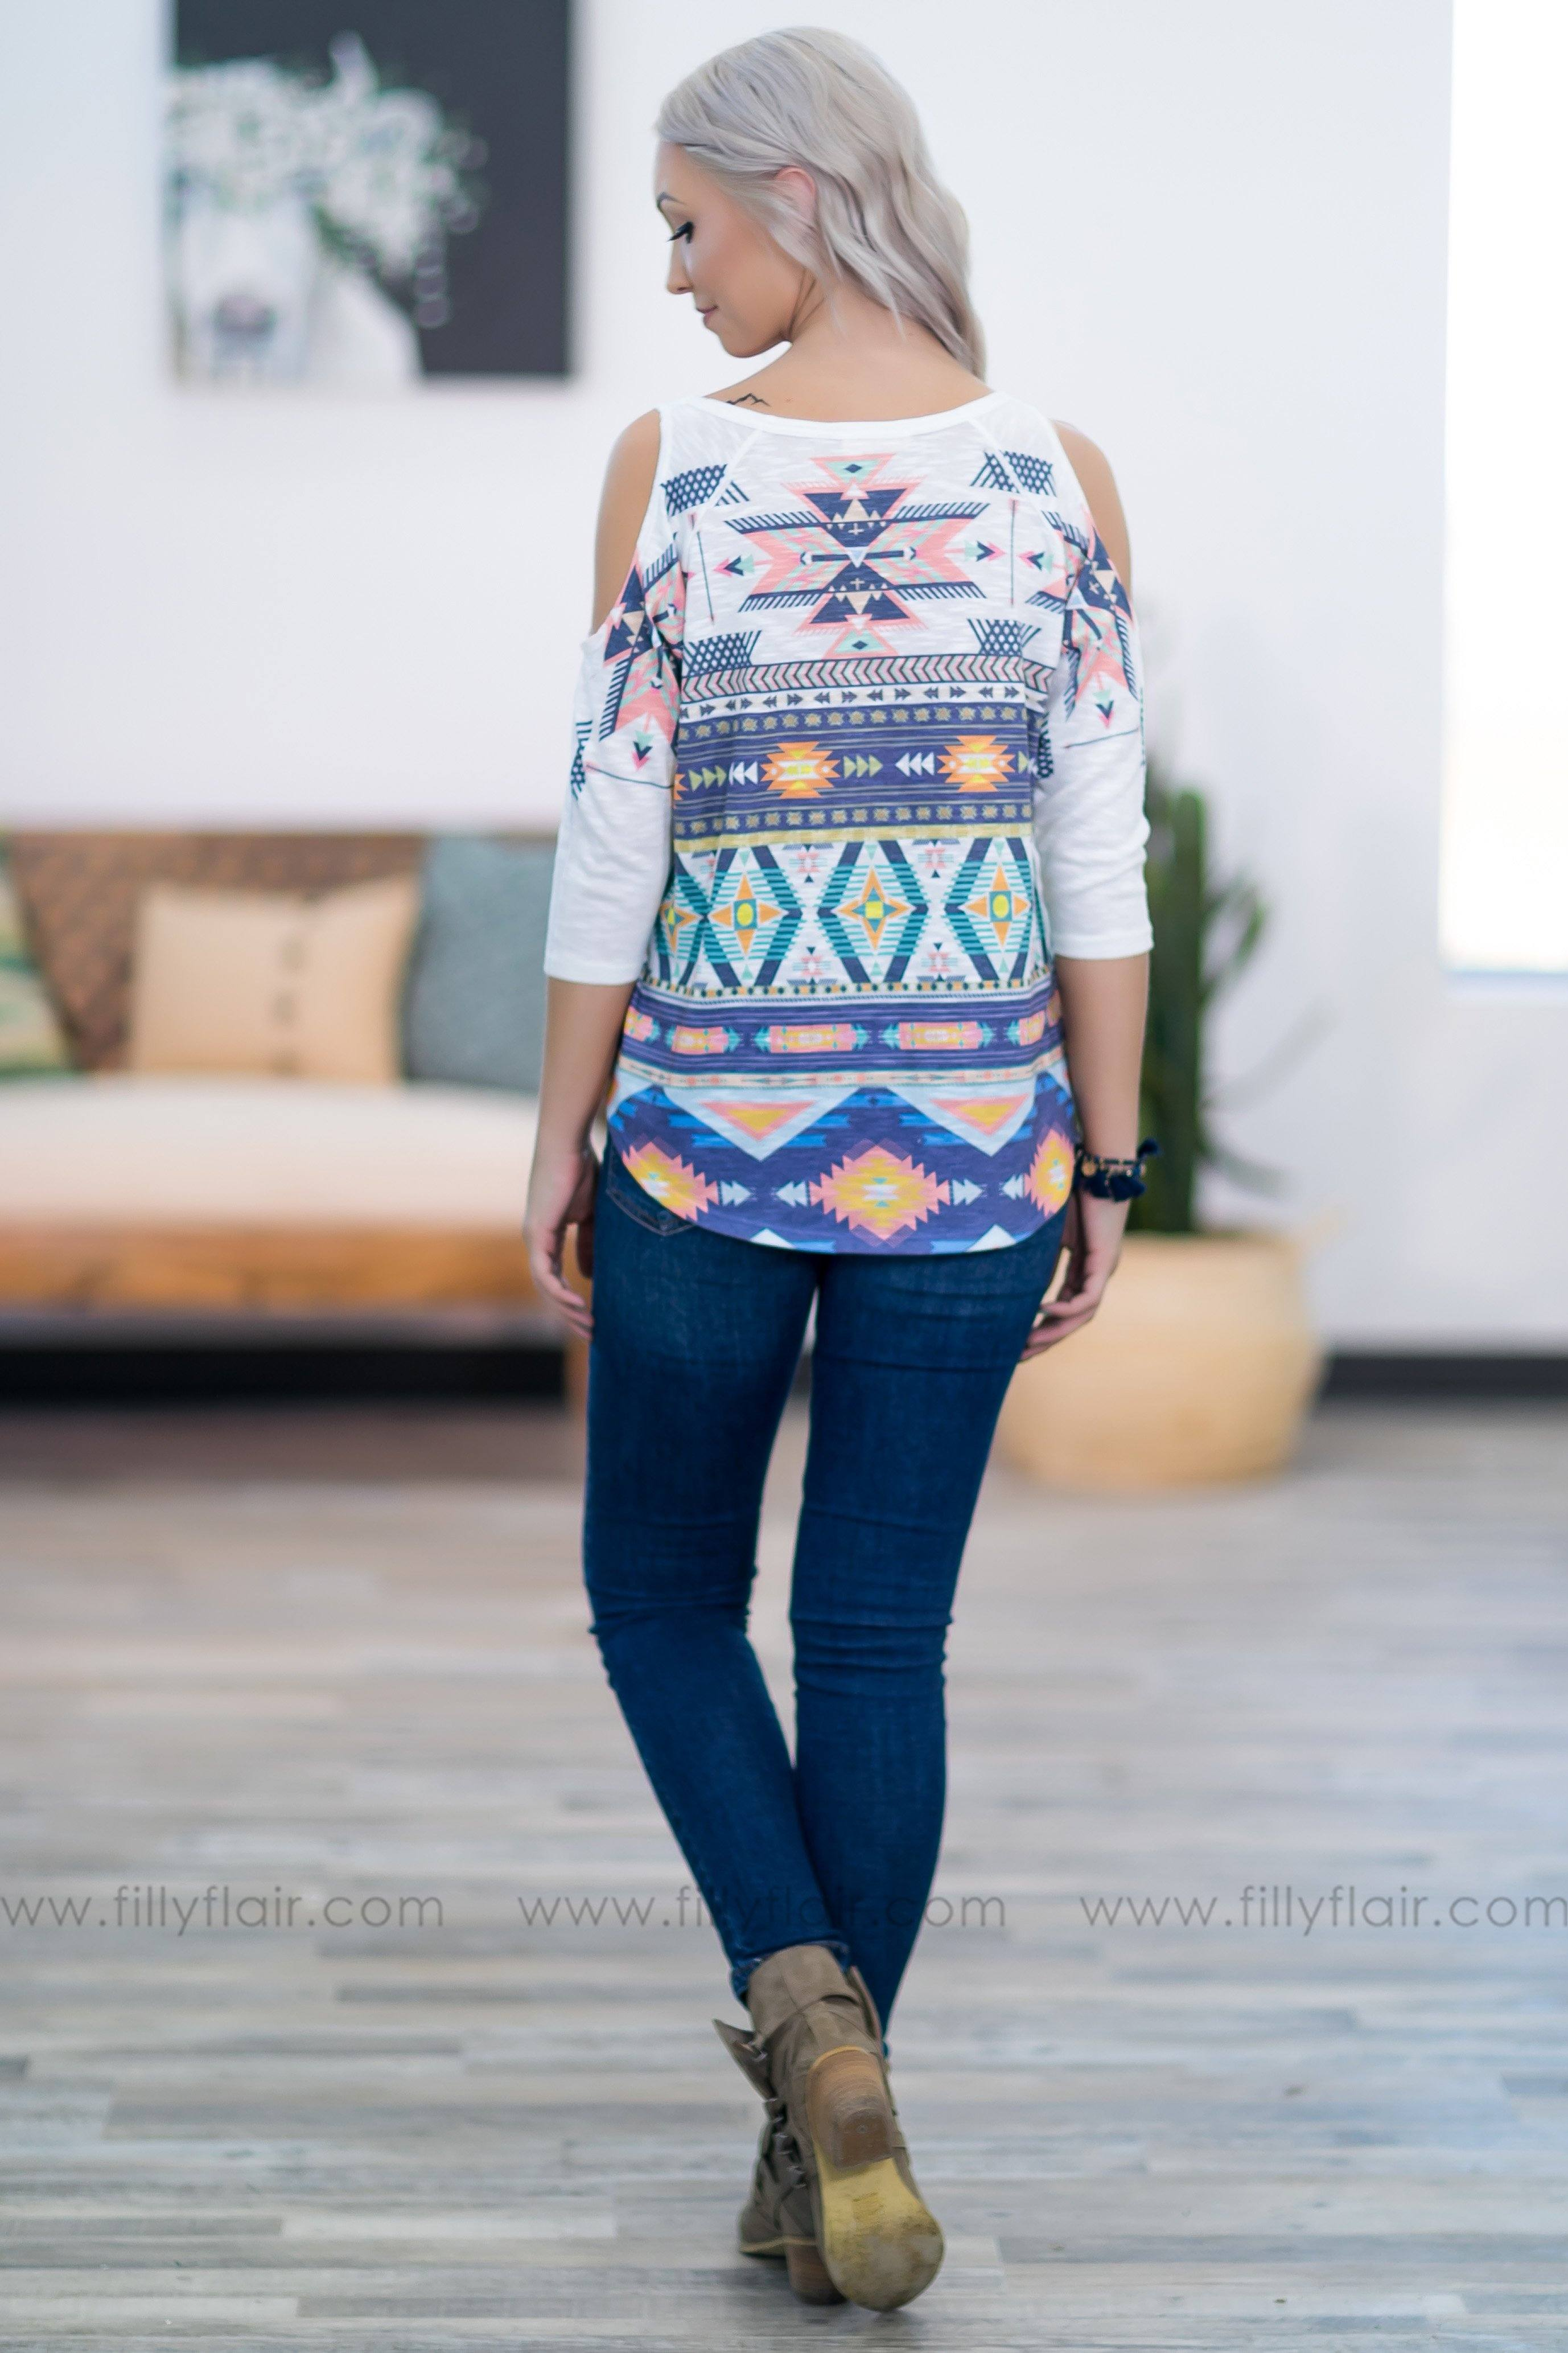 Crazy For You 3/4 Sleeve Aztec Cold Shoulder Top in White - Filly Flair